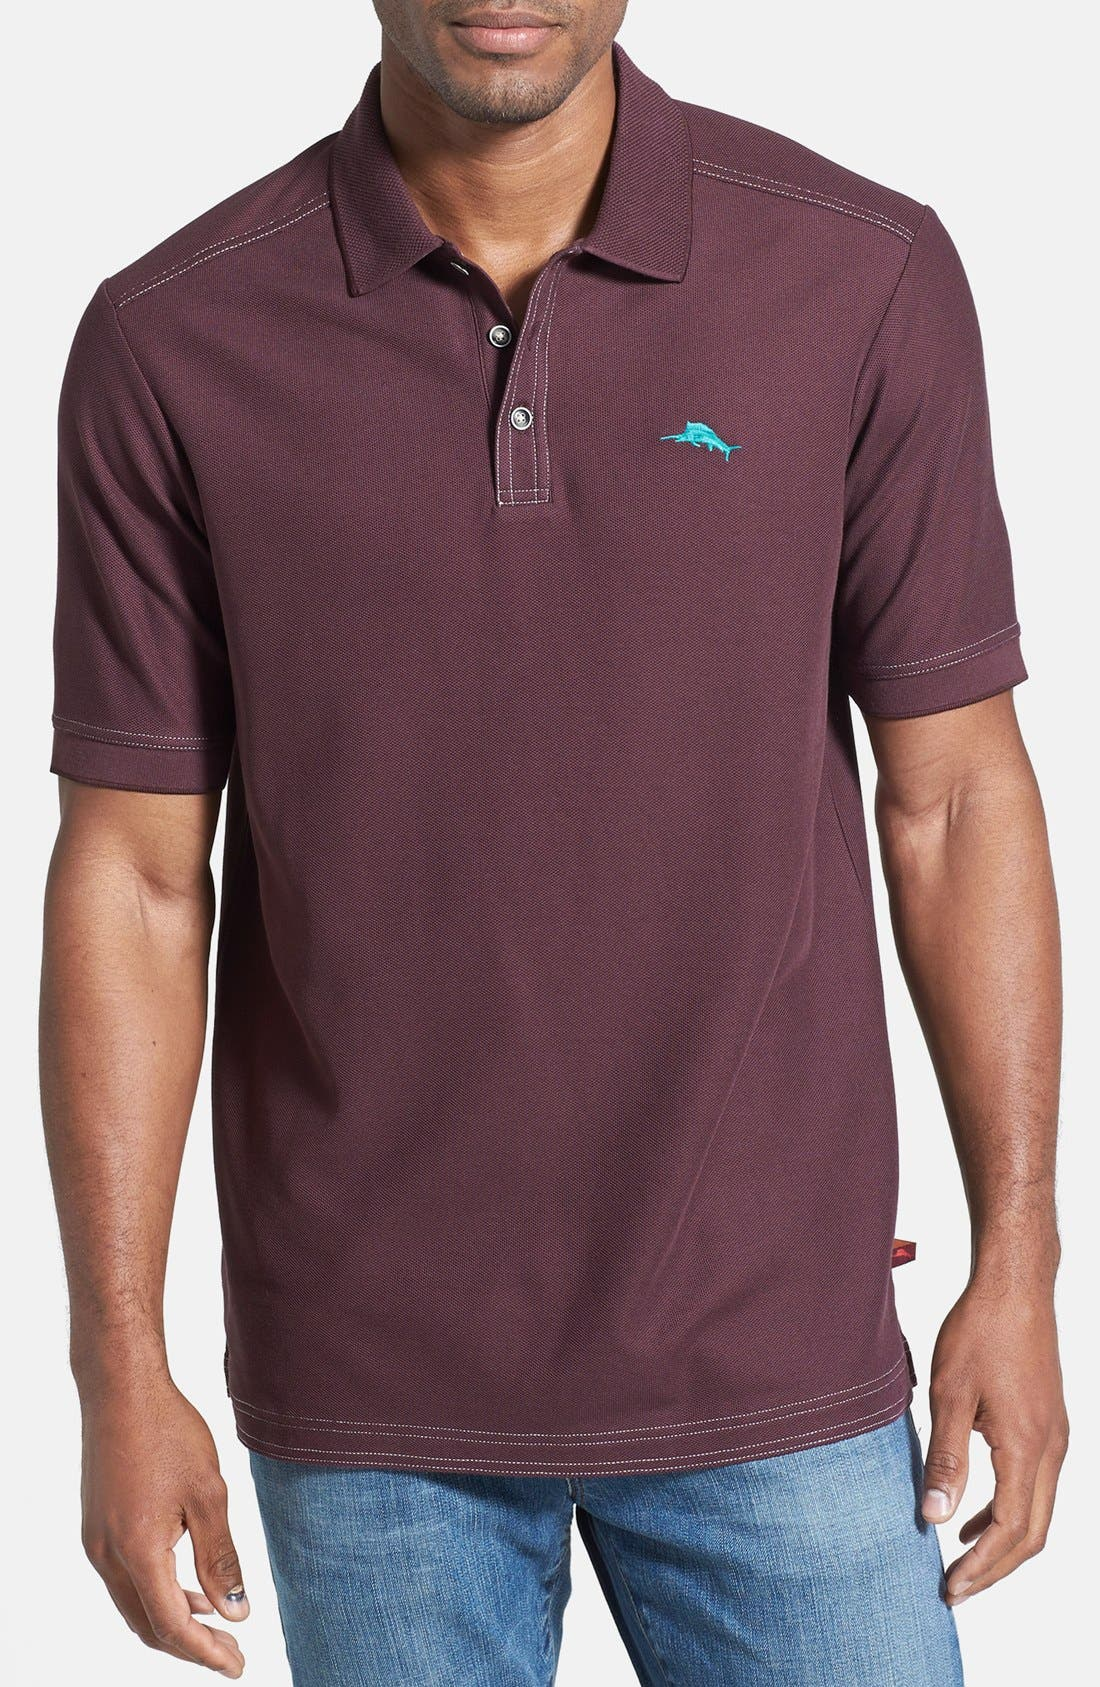 'The Emfielder' Original Fit Piqué Polo,                             Main thumbnail 31, color,